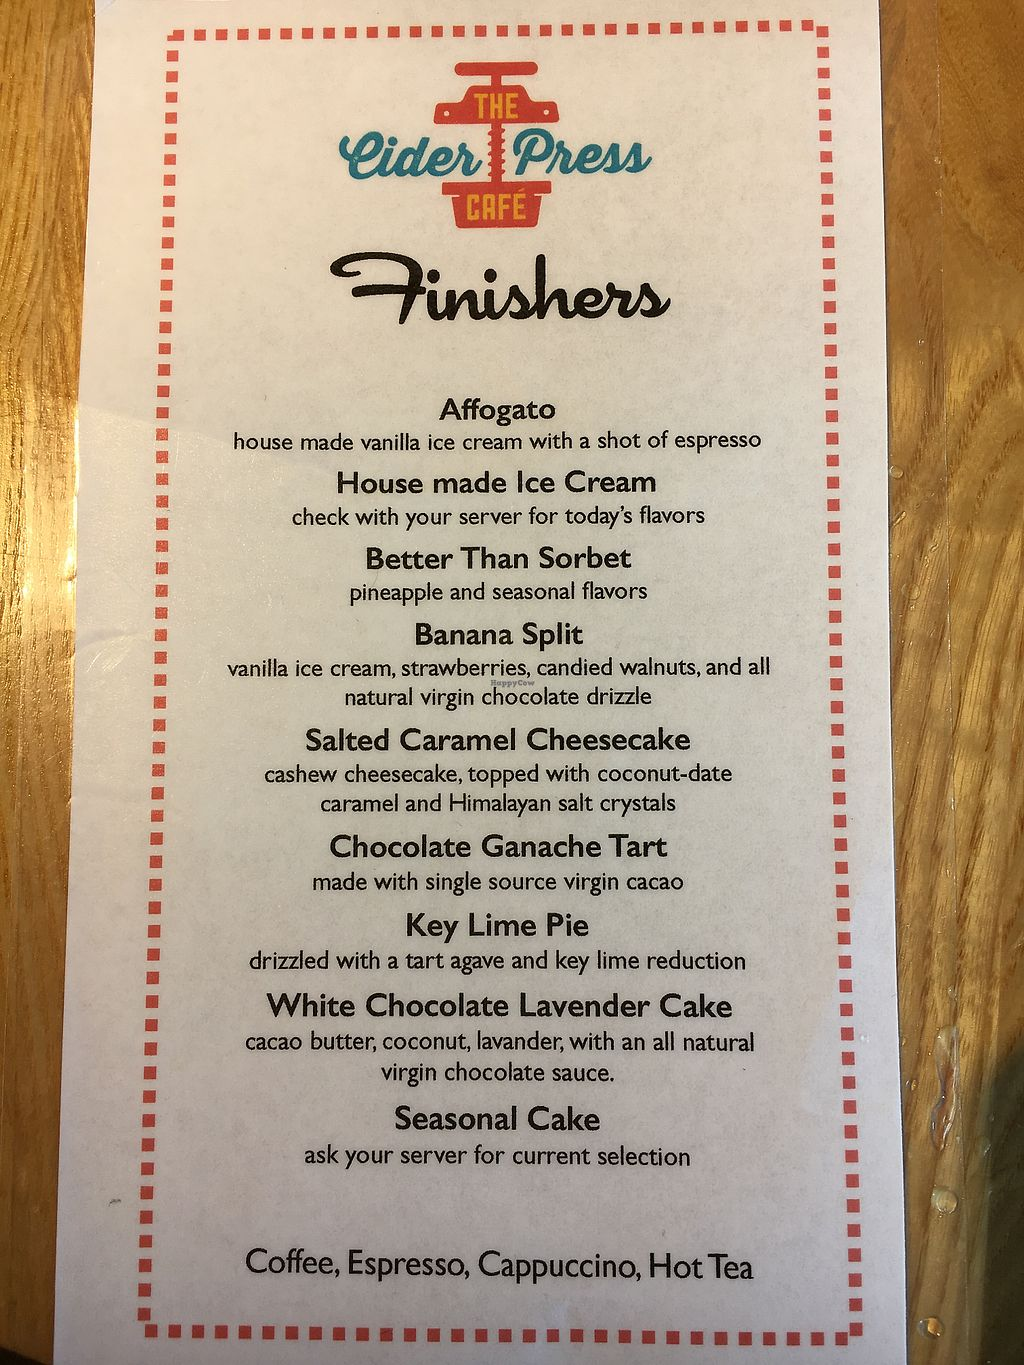 """Photo of The Cider Press Cafe   by <a href=""""/members/profile/KWdaddio"""">KWdaddio</a> <br/>Dessert Menu <br/> September 20, 2017  - <a href='/contact/abuse/image/62213/306616'>Report</a>"""